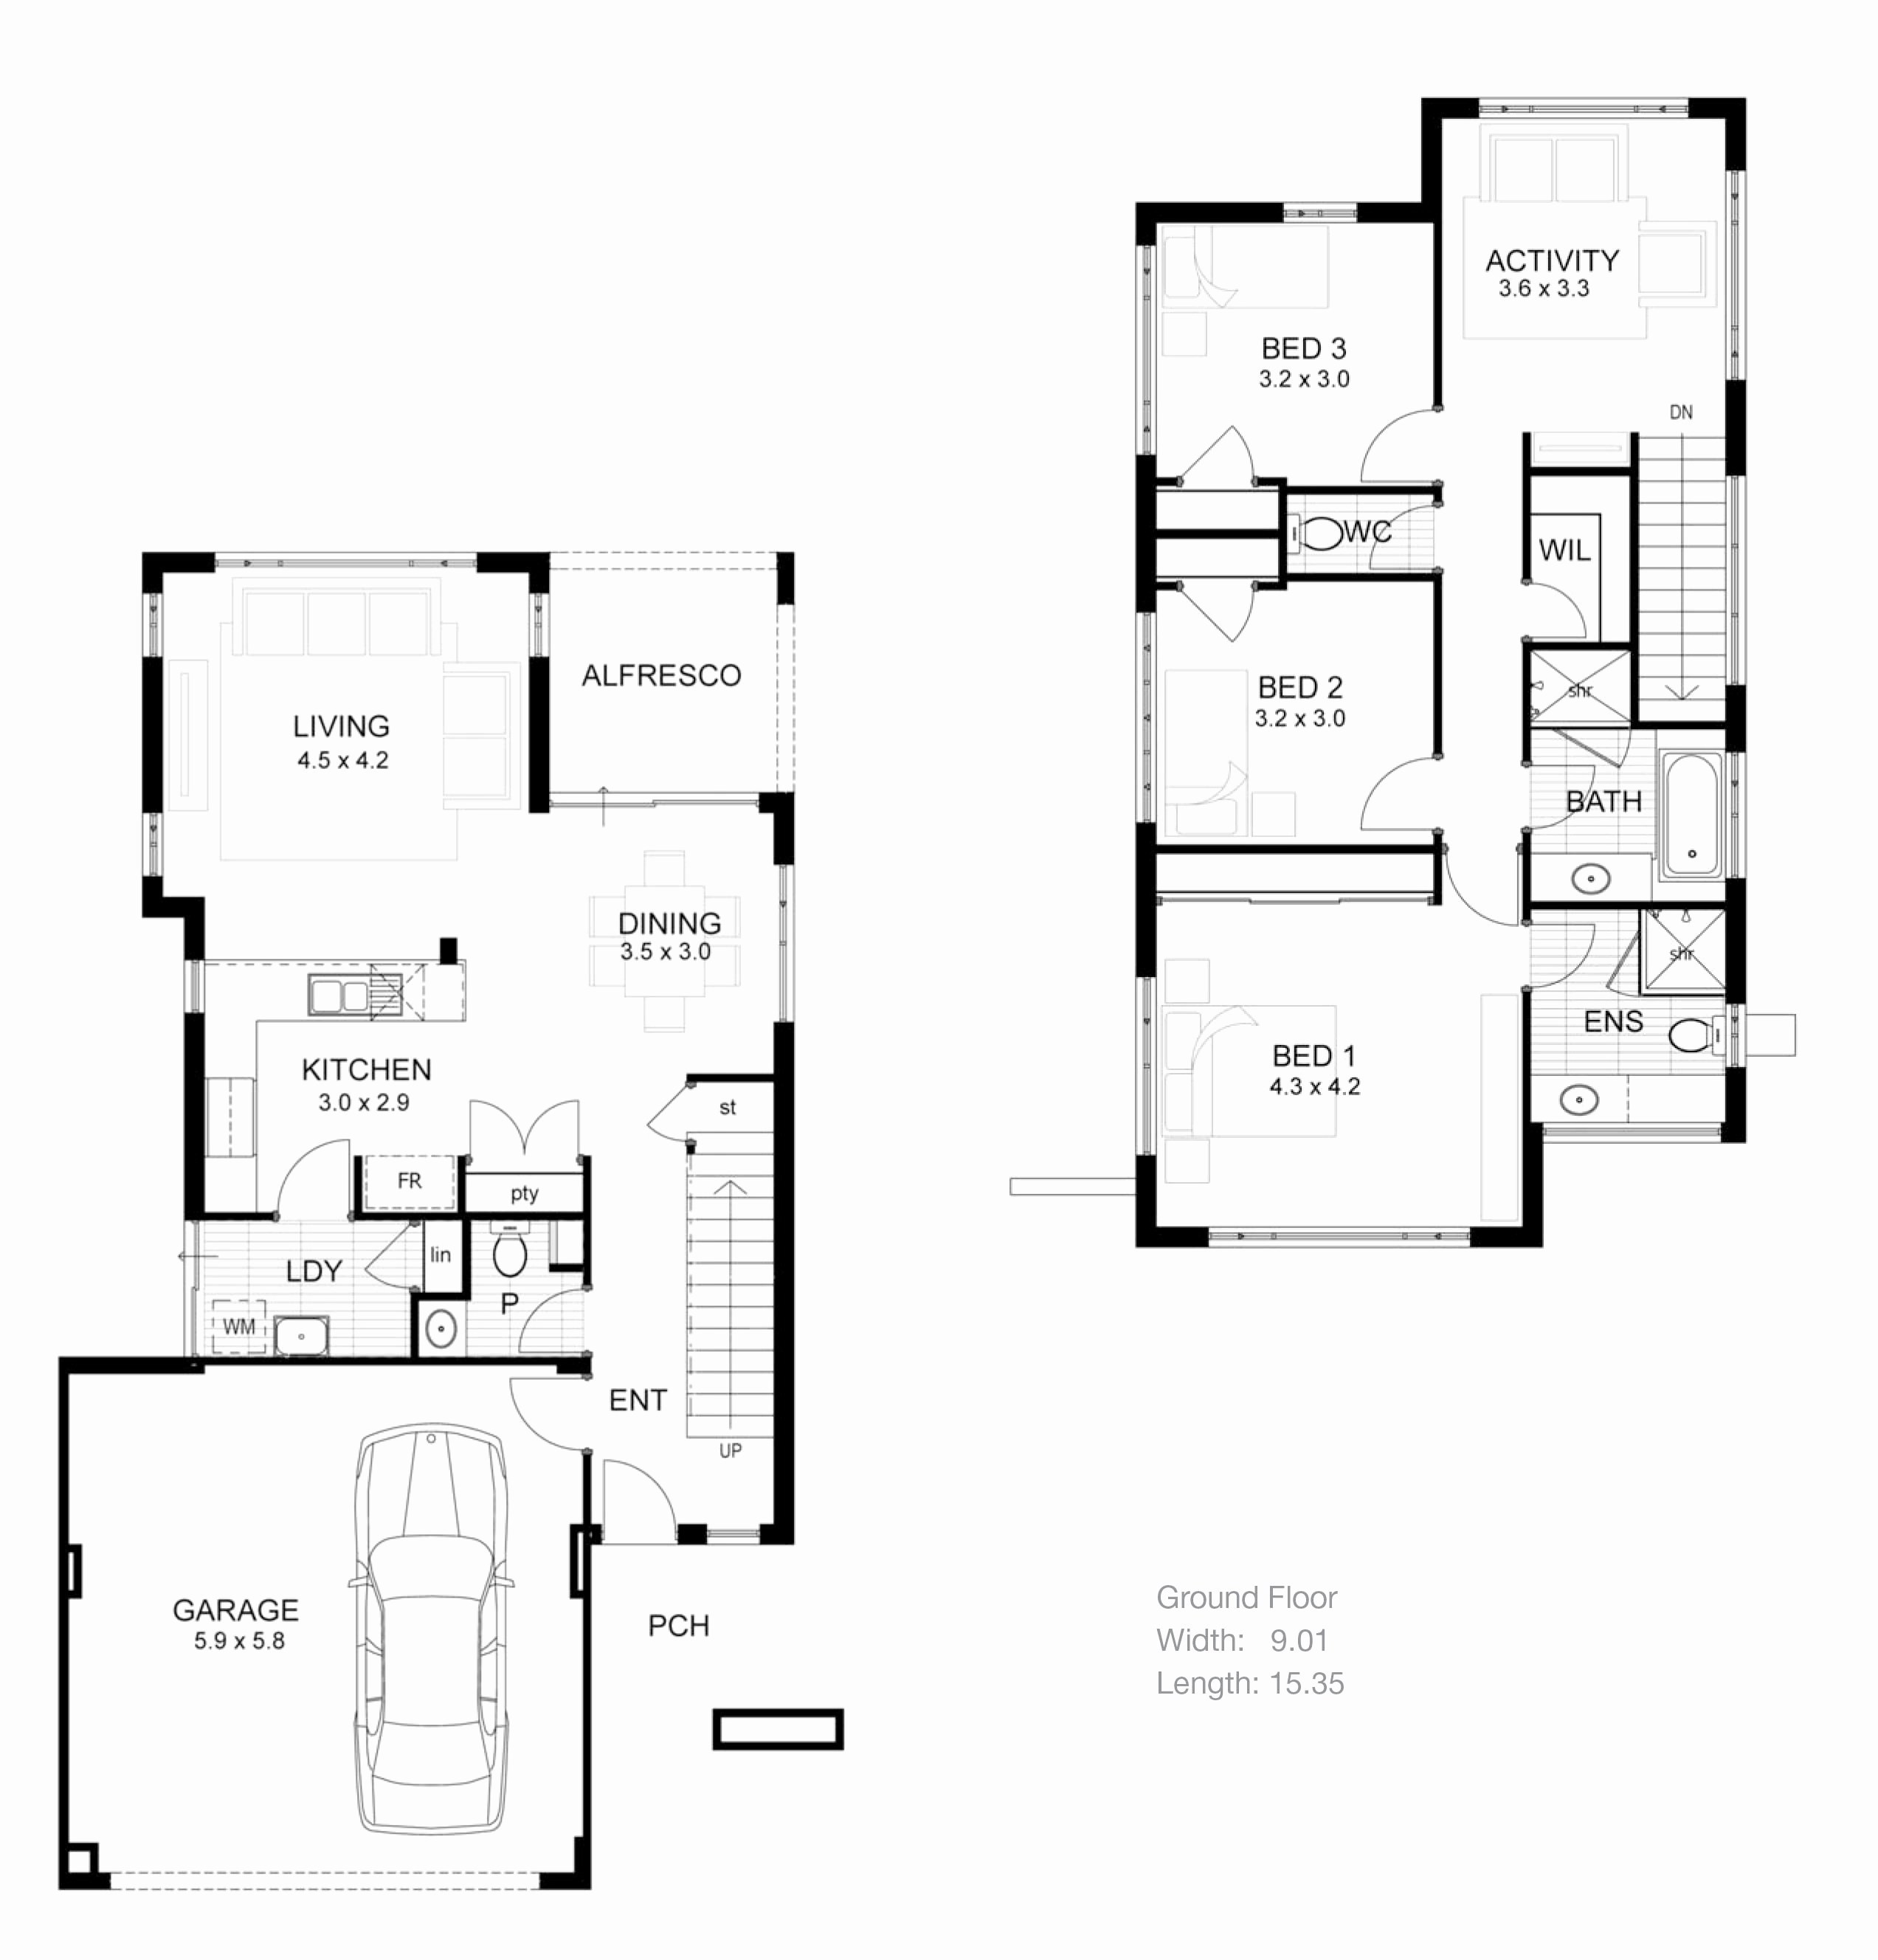 House Floor Plan With Electrical Layout